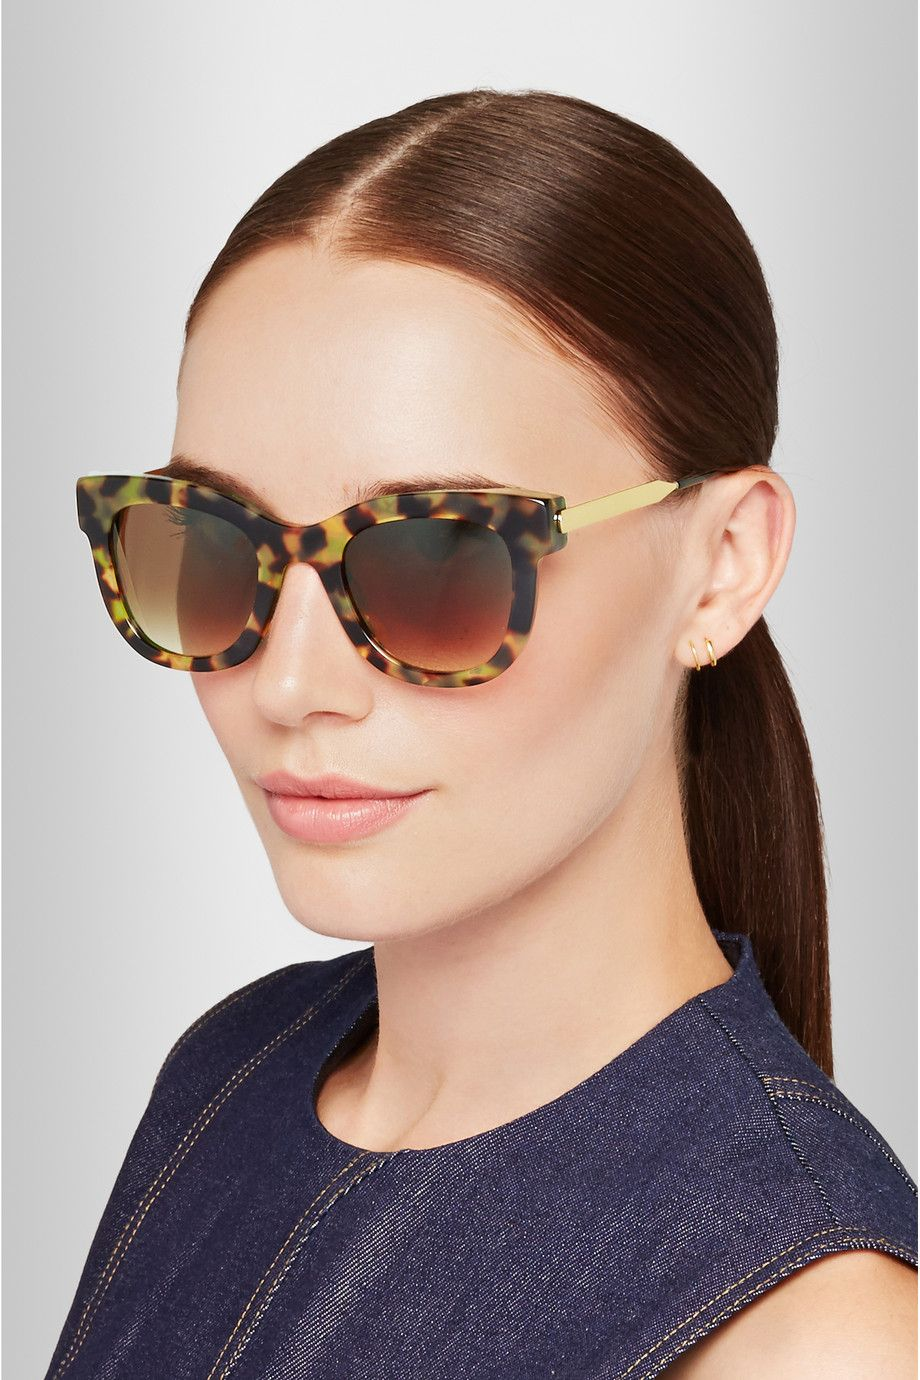 Sexxxy Sunglasses Thierry Lasry